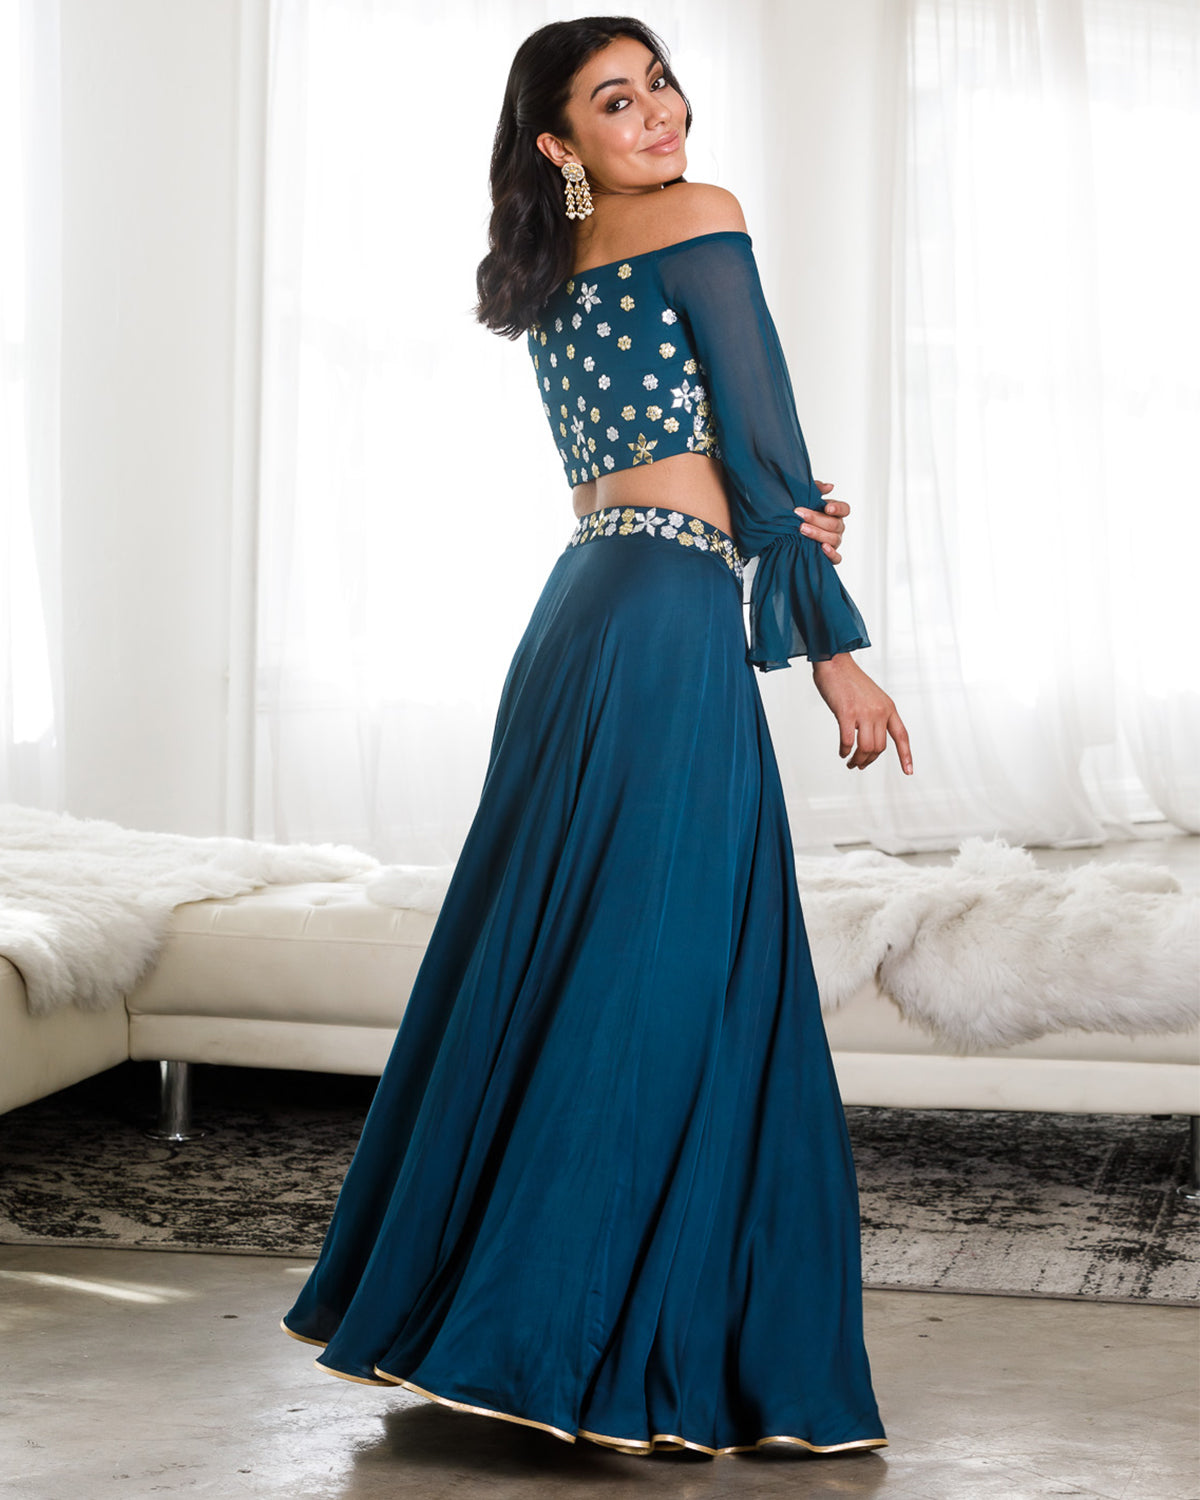 Teal Lehenga with gold and silver mirrored flowers